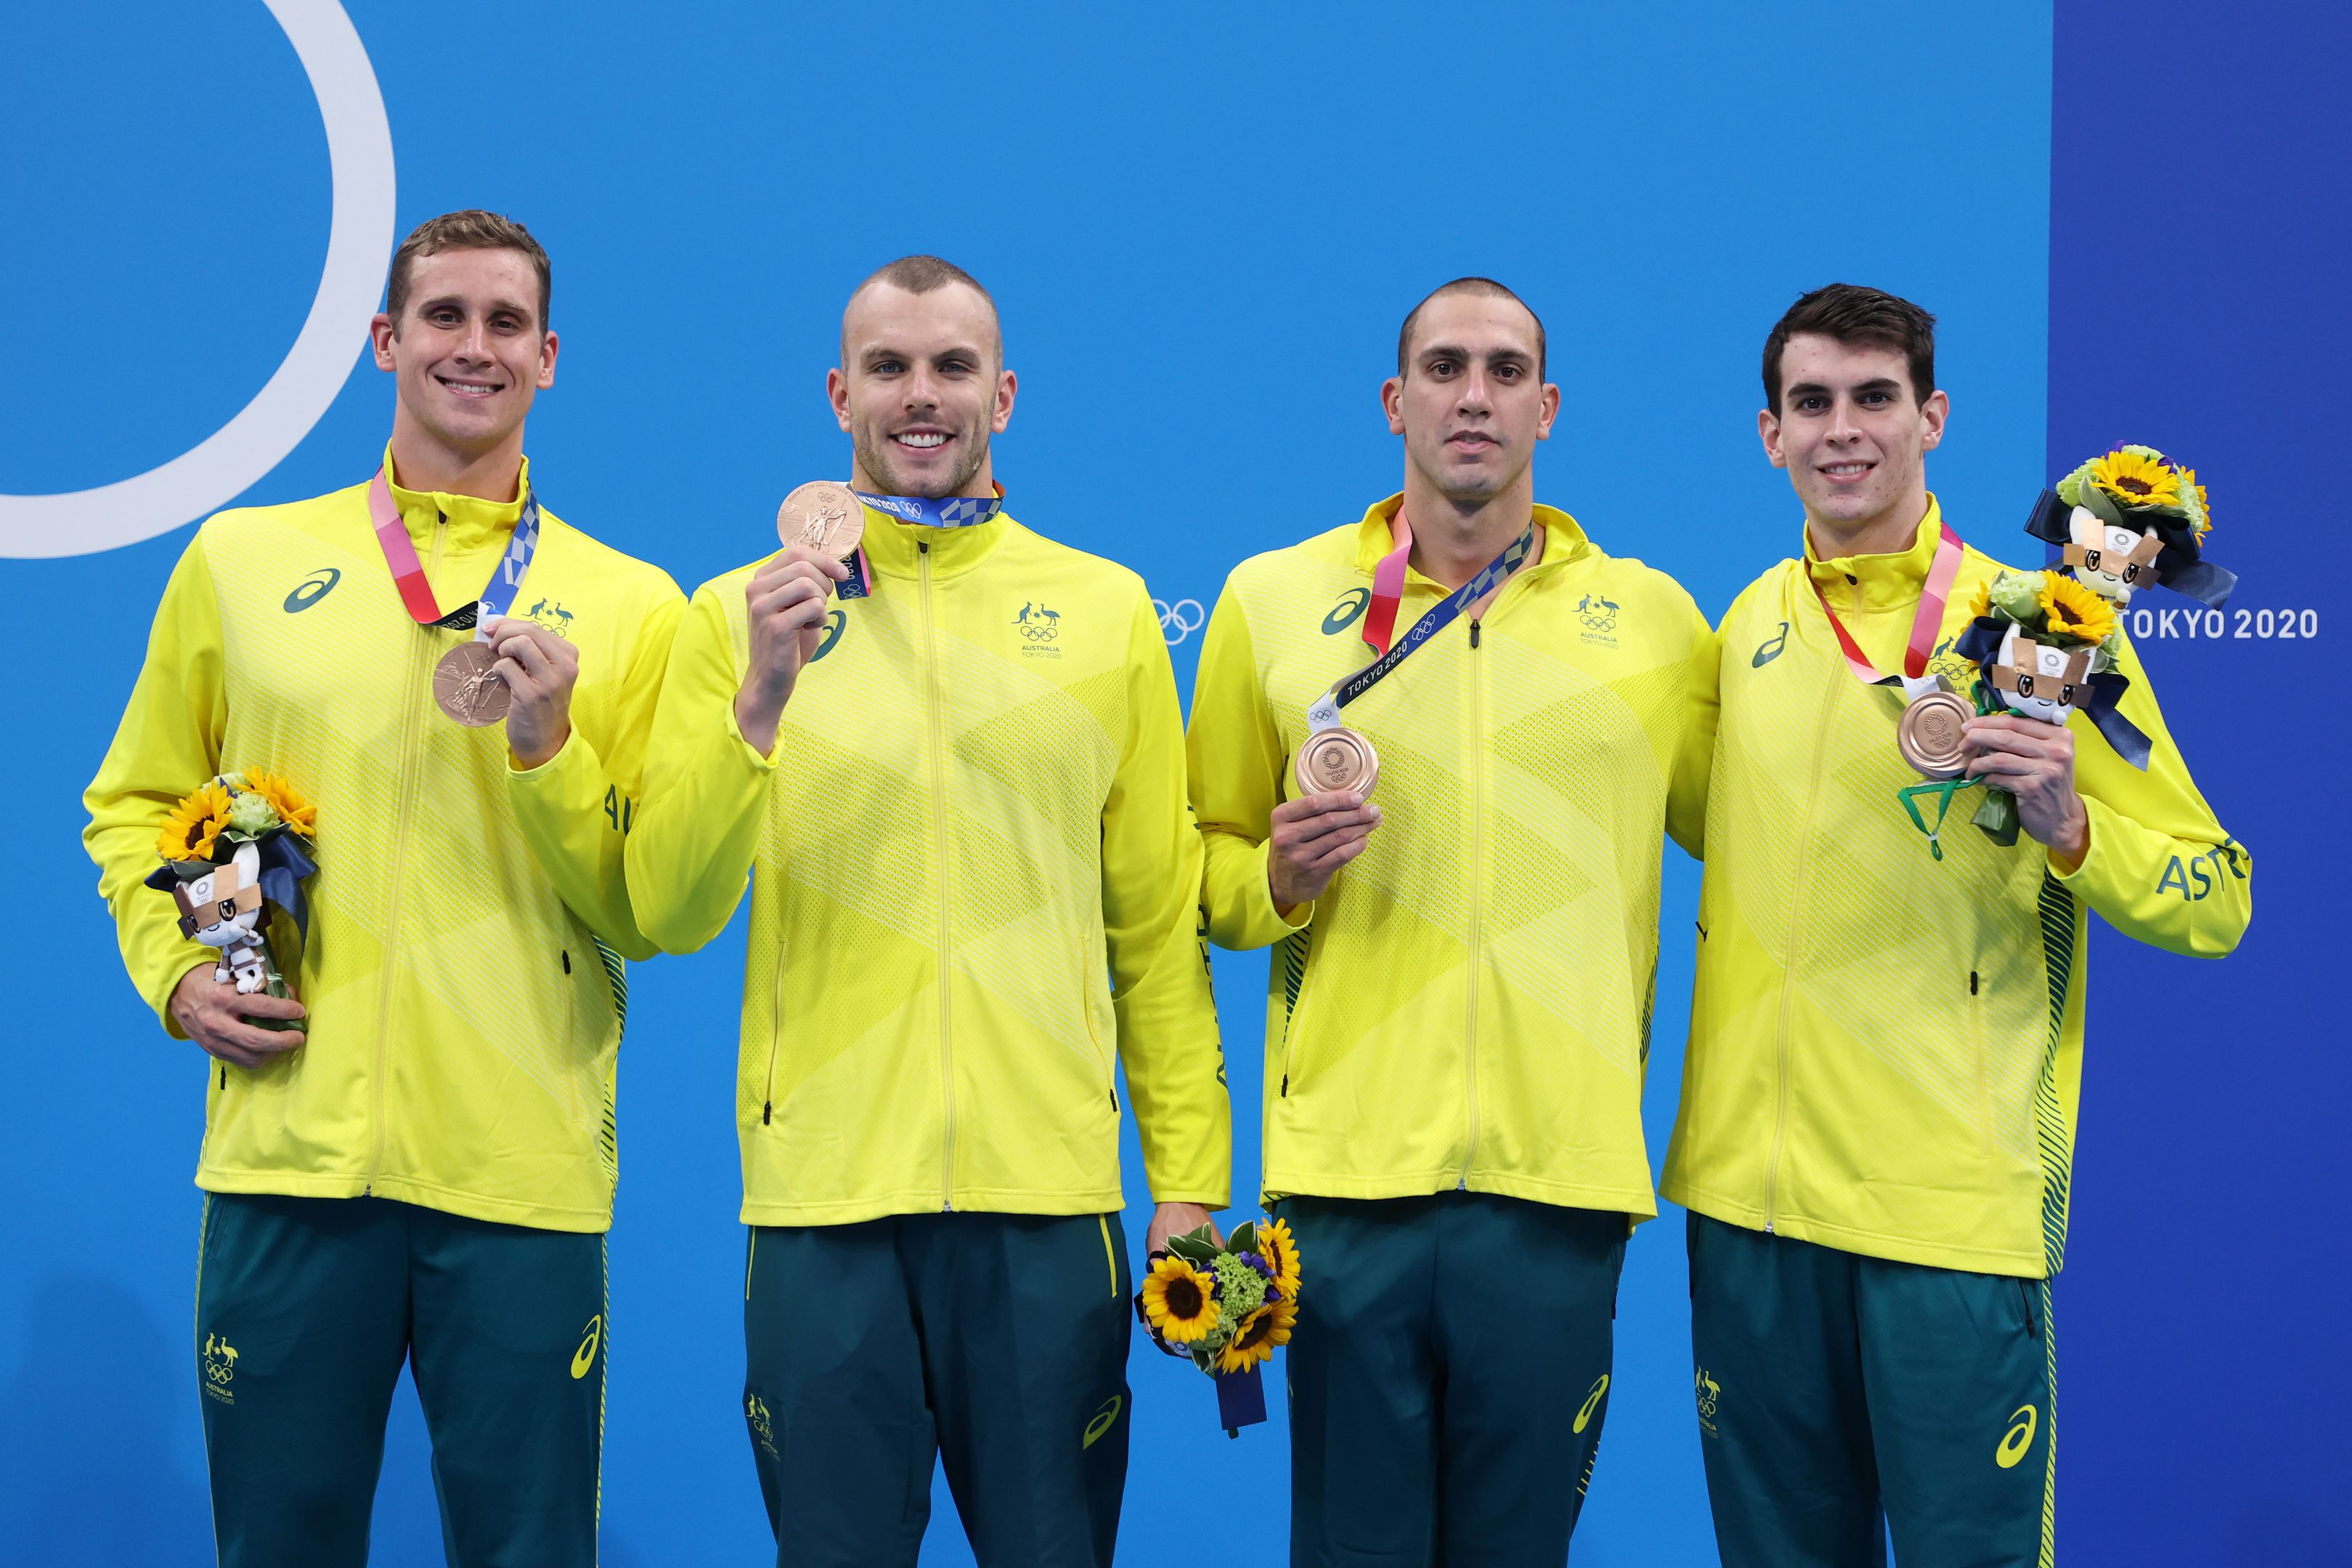 Australia claims bronze as Team GB flex muscles to win 4x200m relay gold